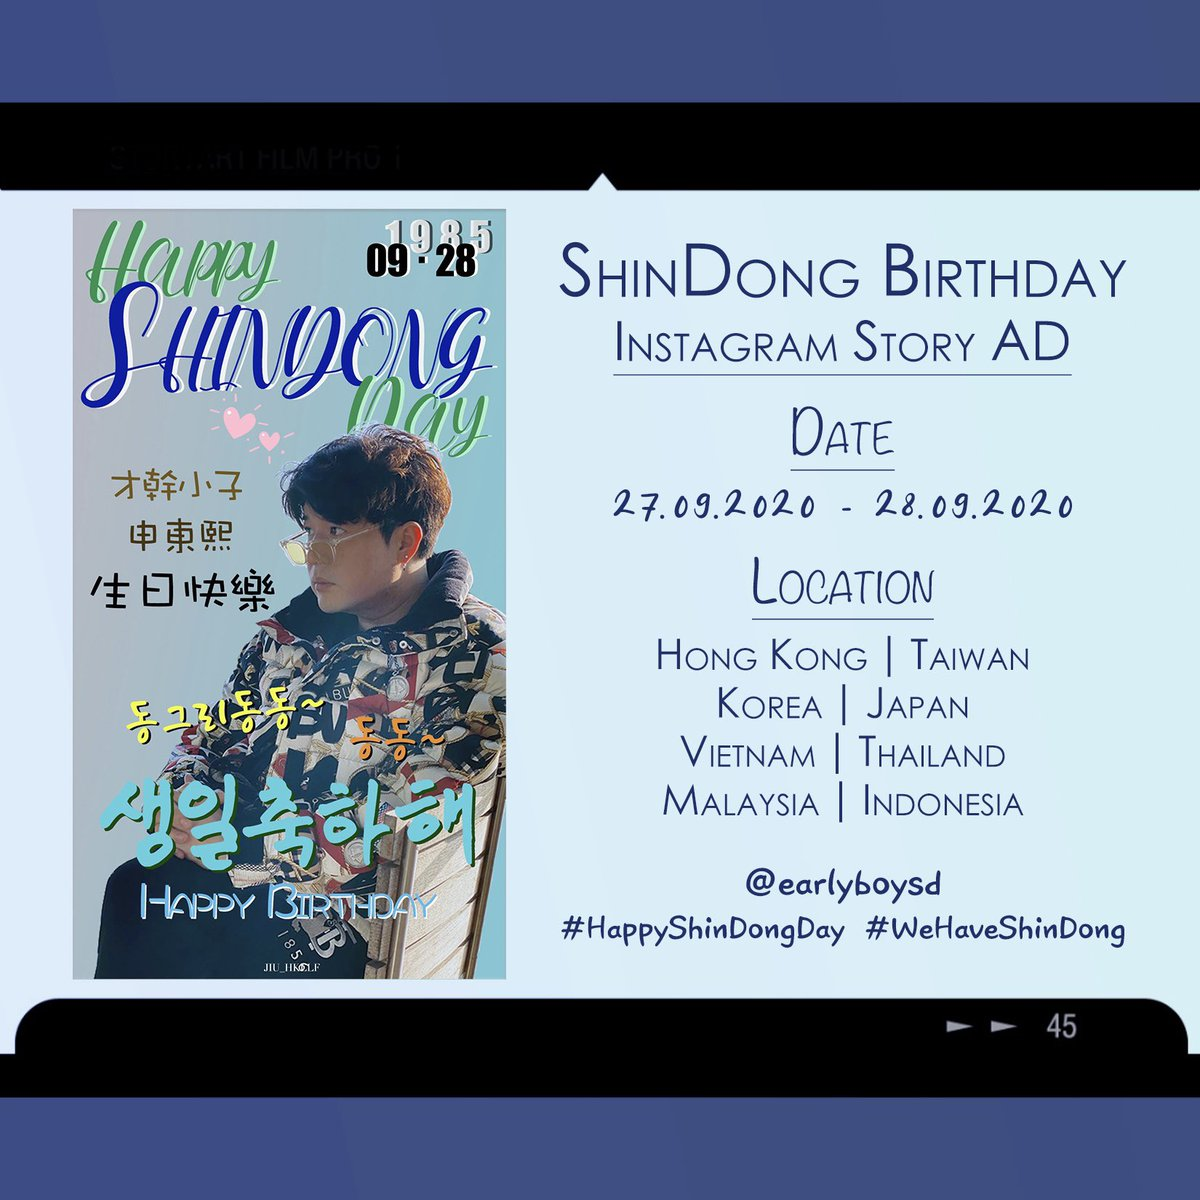 There will be an Instagram Story AD celebrating Shindong's birthday. So if you reach the AD, please tag Shindong^^ Let's celebrate Shin's birthday 😽 #신동생일축하해 #HappyShinDongDay #Shindong #神童 #신동 #ShinDonghee #申東熙 #신동희 #WEHAVESHINDONG https://t.co/IjzmlggN6b